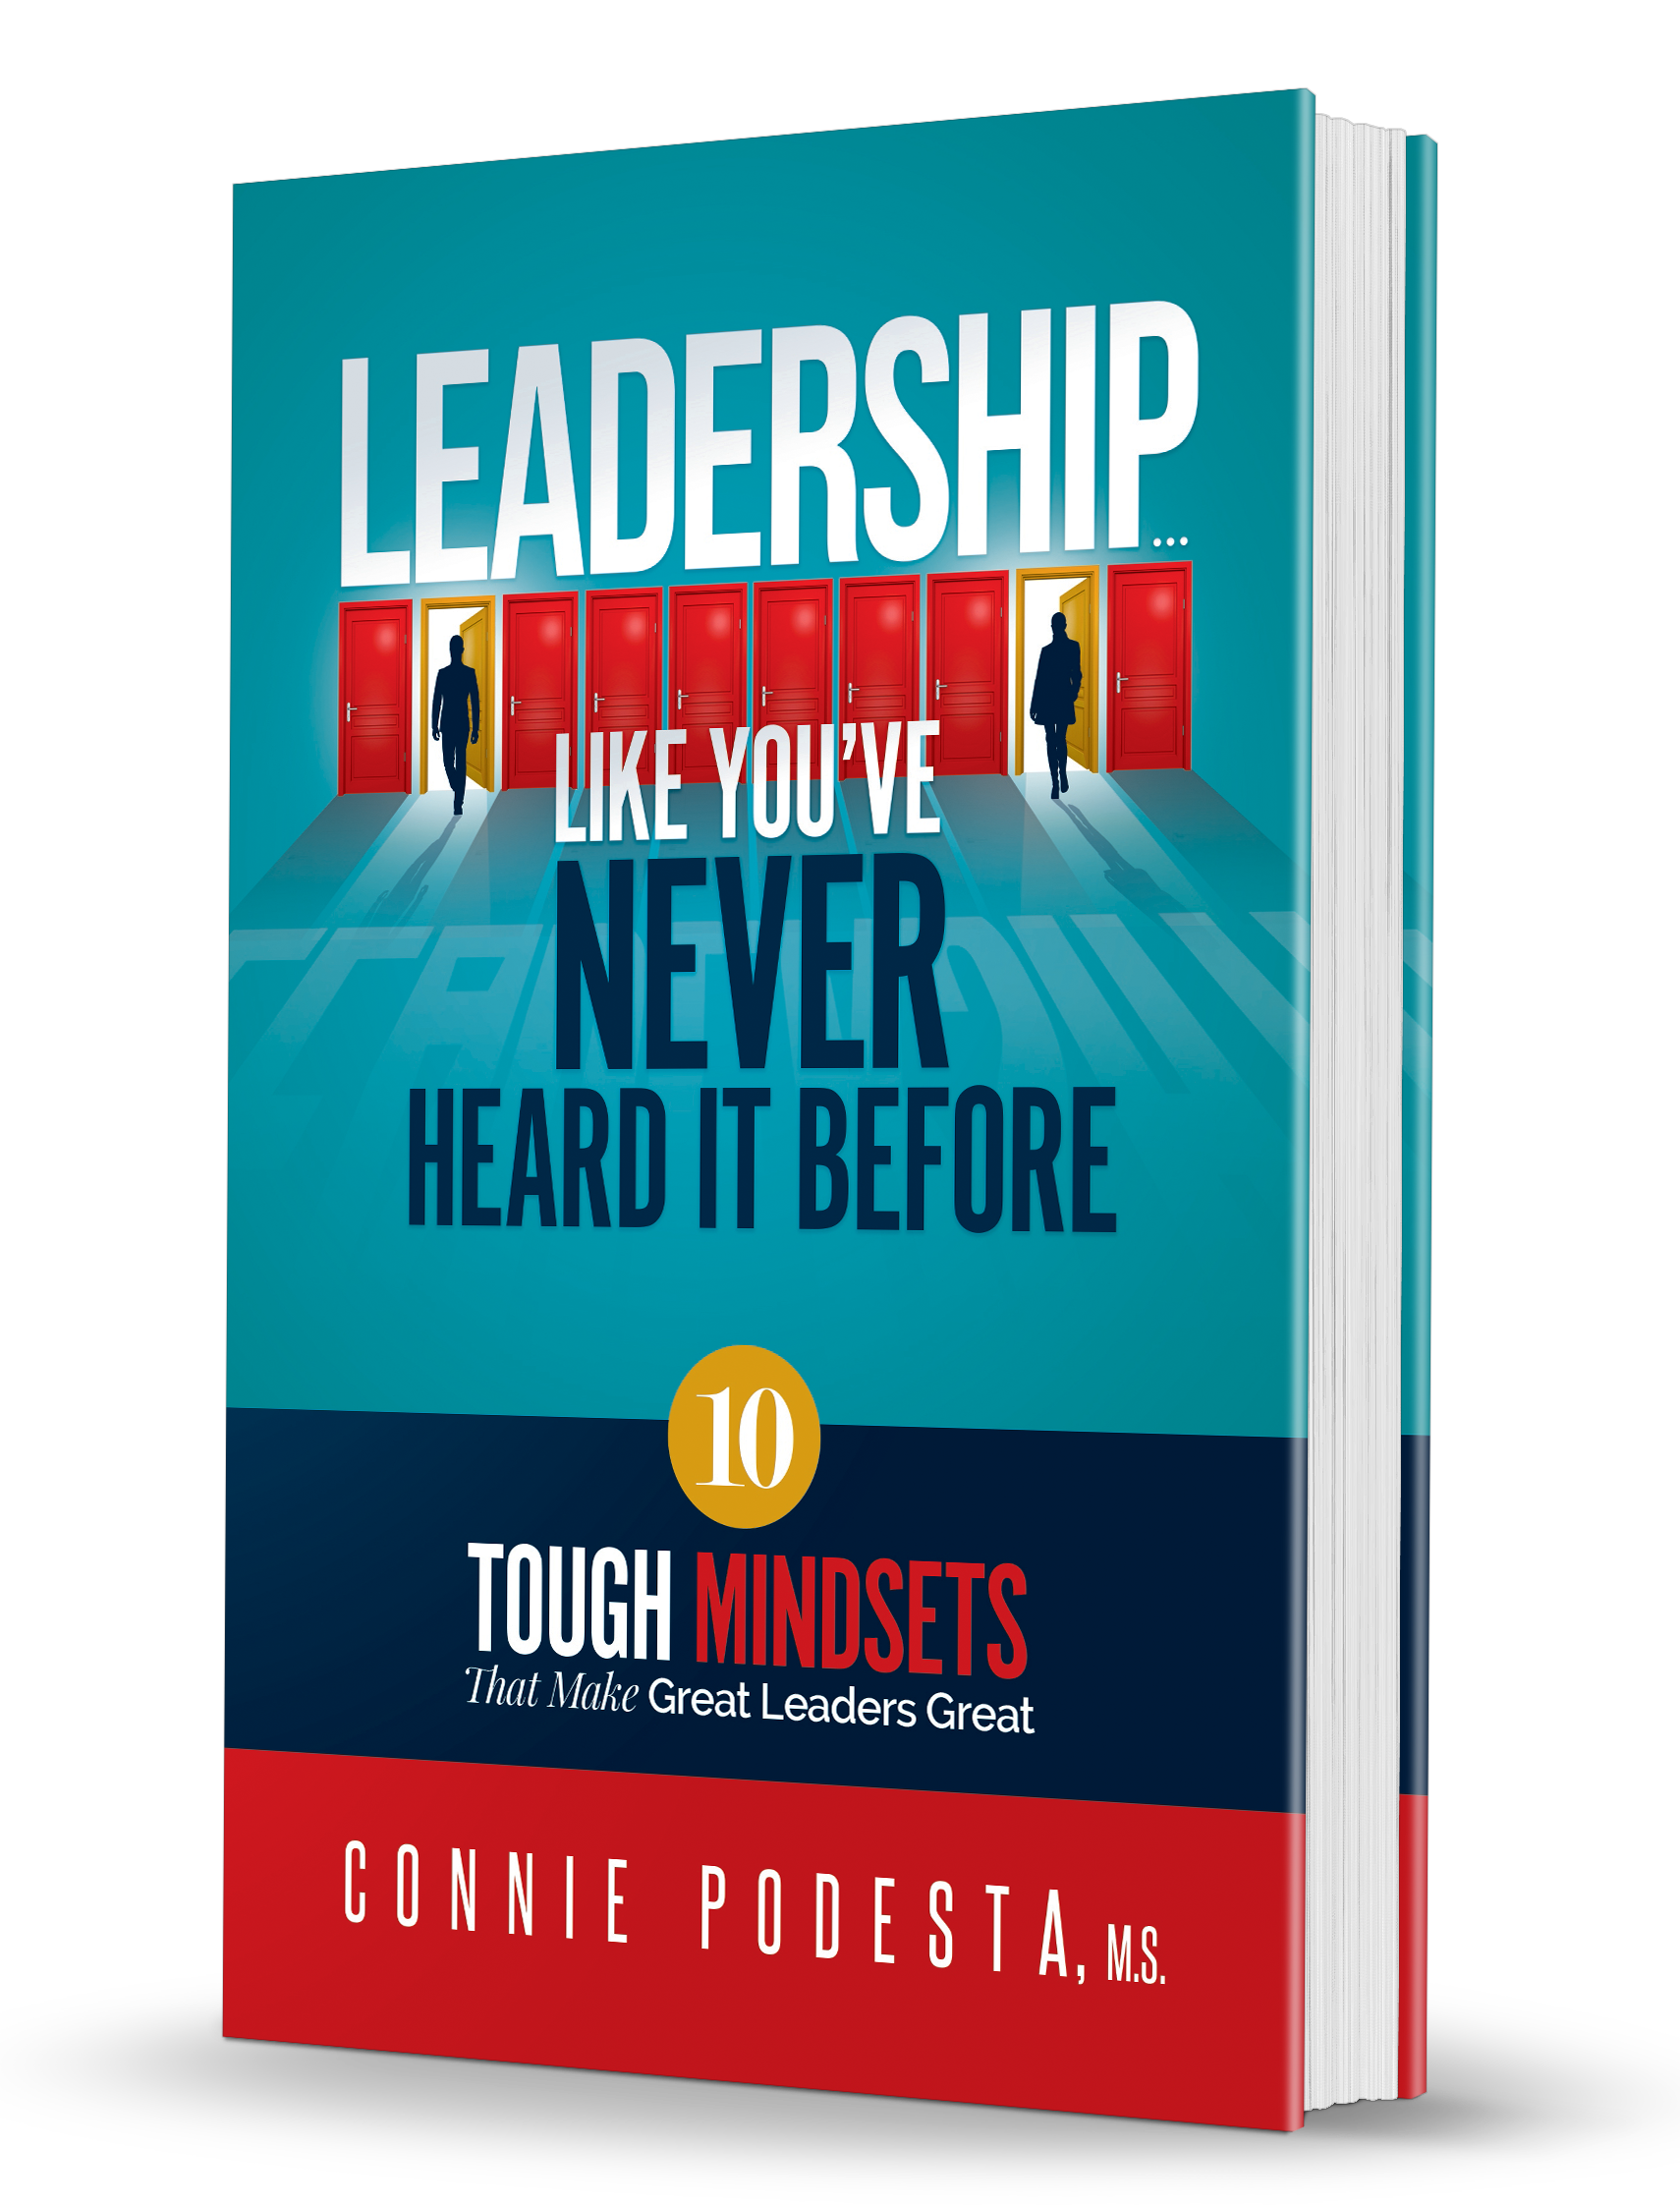 leadership-book-cover-3d